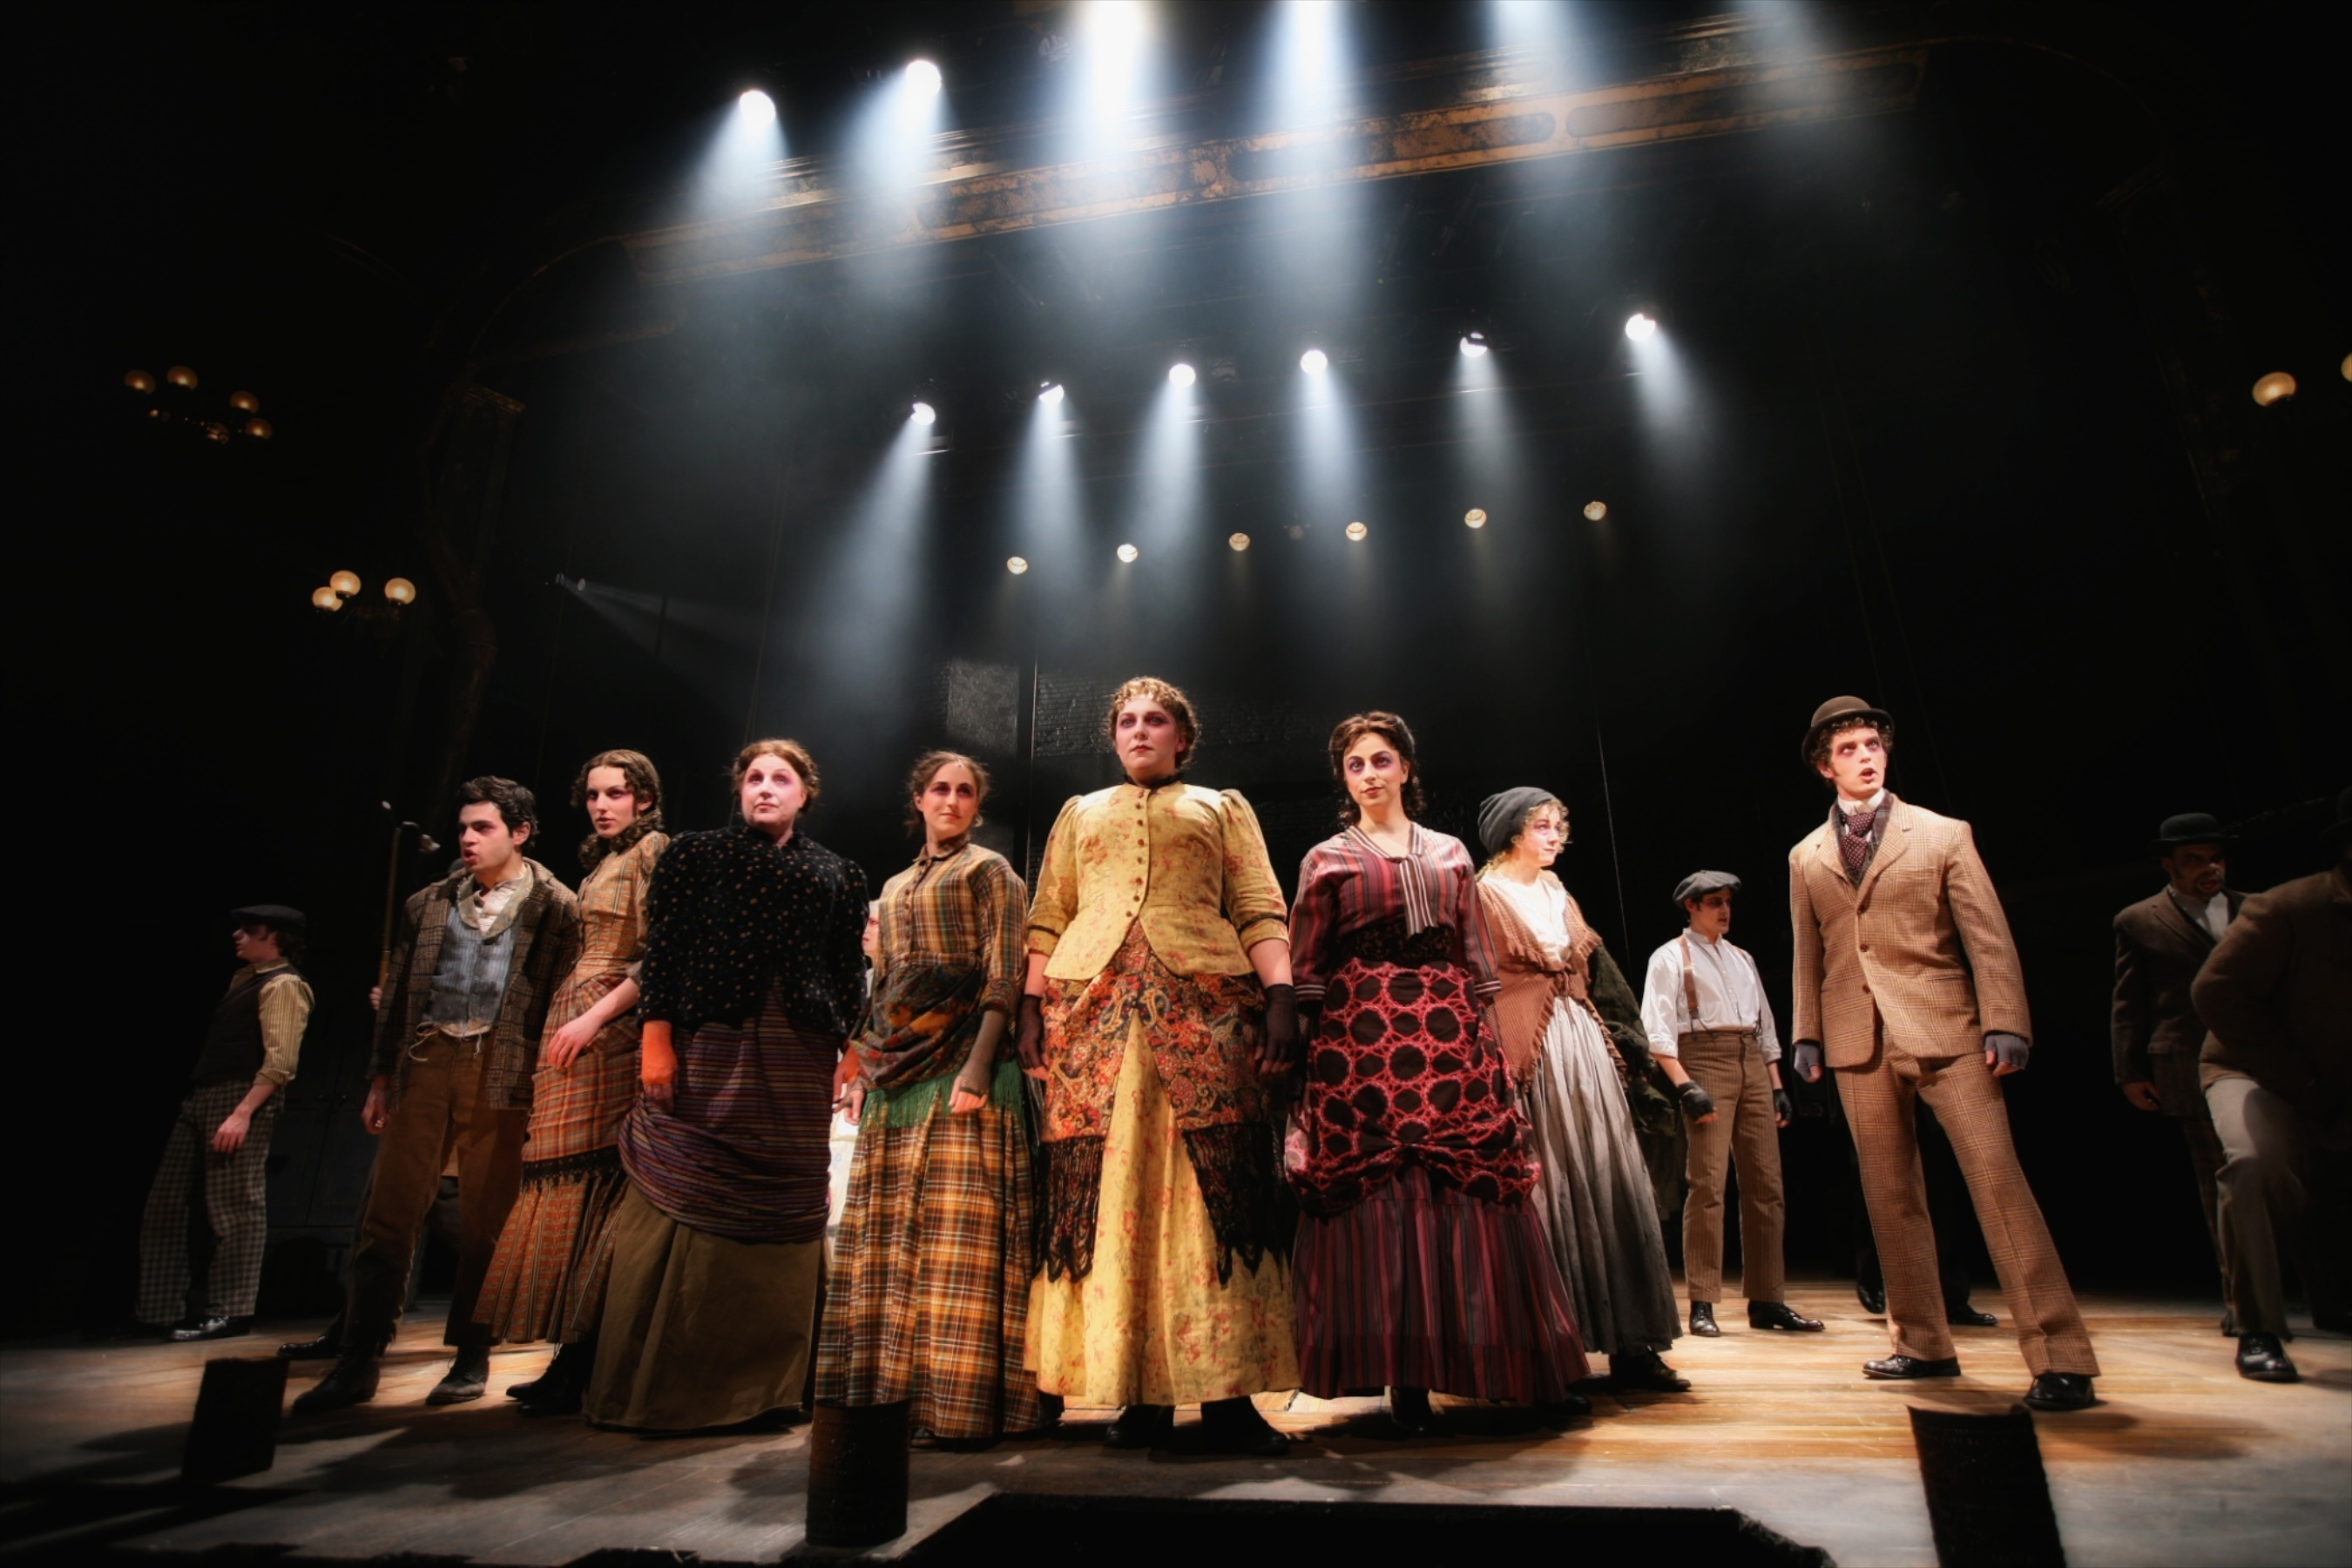 Sweeney Todd Group with Dramatic Lighting